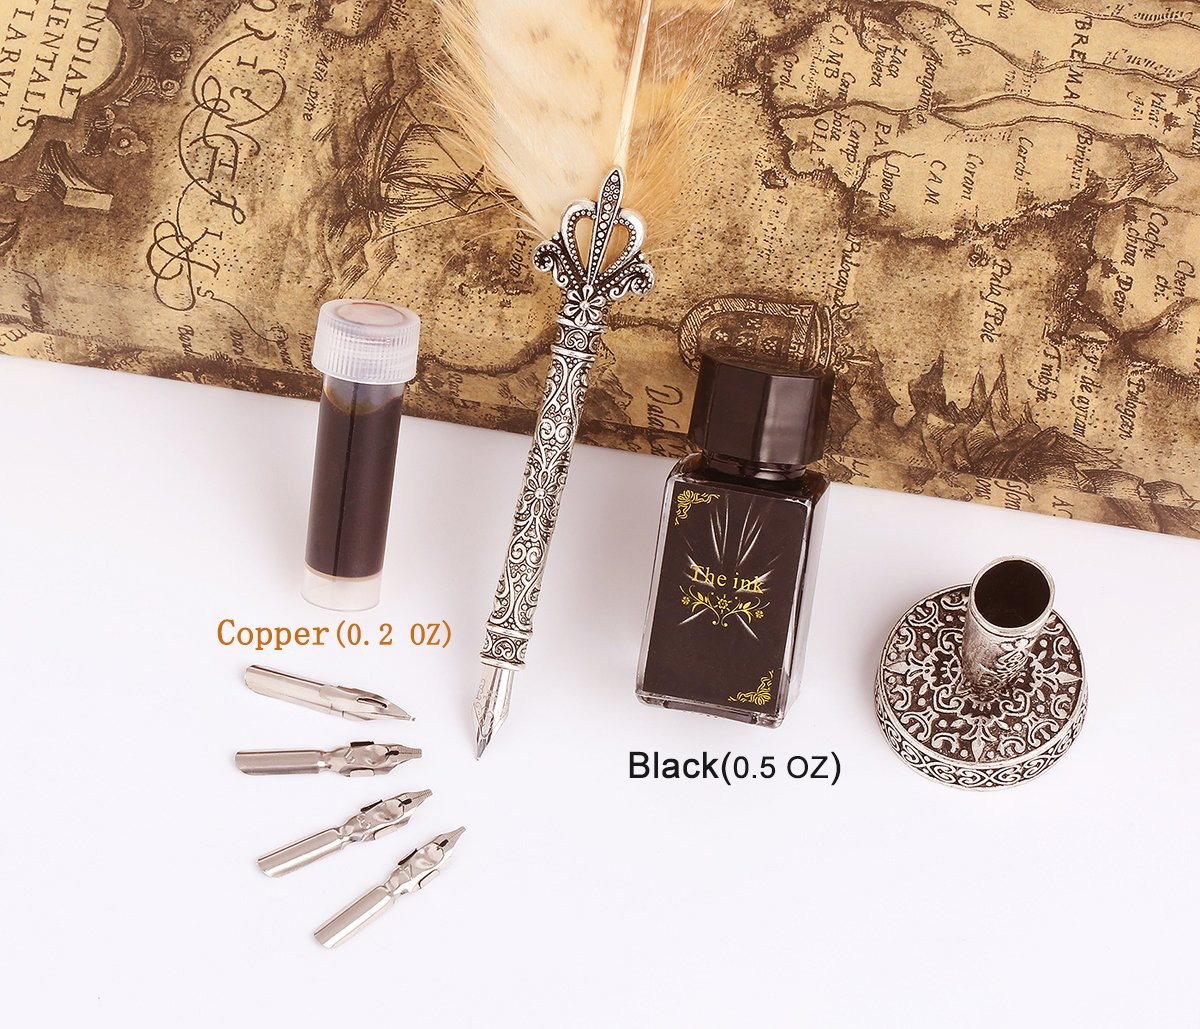 Calligraphy Quill Pen Ink Set, SunMirror Antique Feather Dip Pen Kit Writing Quill Storage Ink Dip Pen Gift Set (Owl) by SunMirror (Image #3)